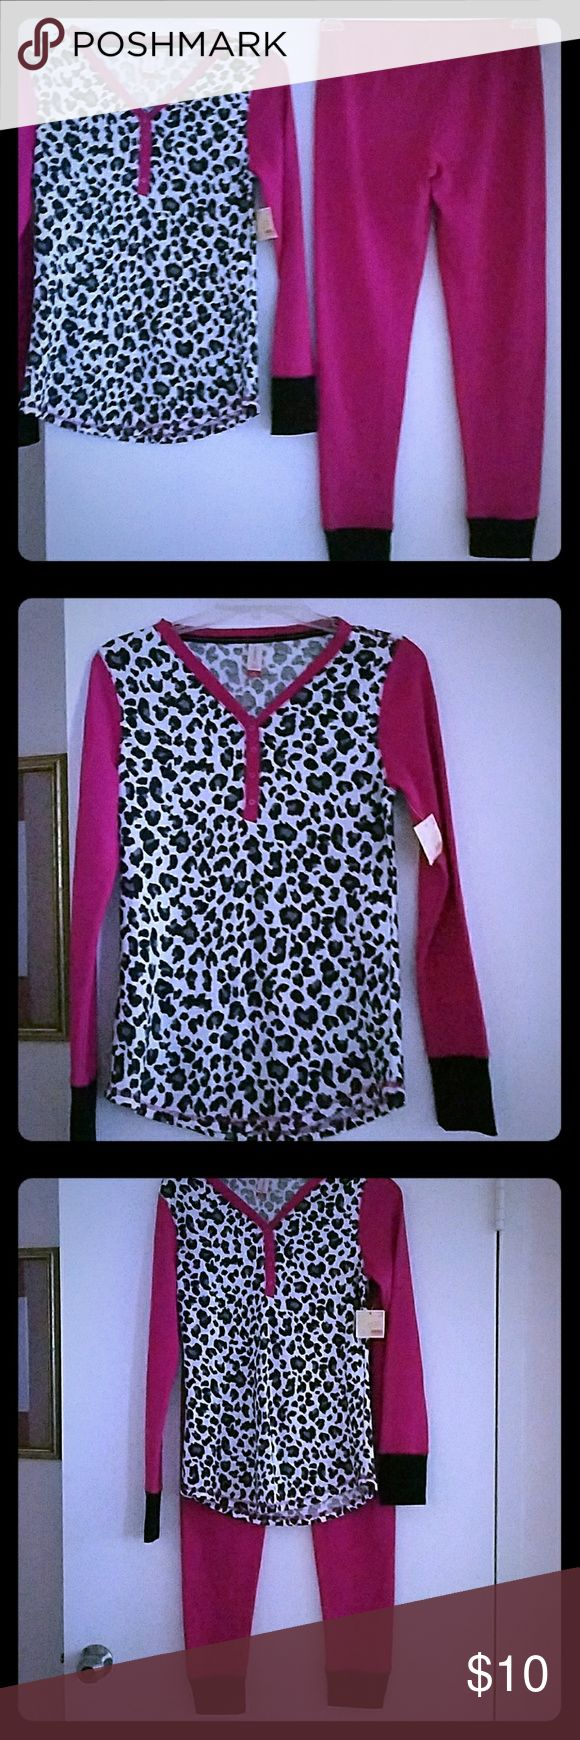 ??NWT?? Ladies NoBo Thermal Pijama Set ??CLERANCE?? Very cute ladies pajama NoBo Thermal 2 Pc. Pajama Set Size Medium 7-9 Multicolor. Awesome.  Color pink and plack lepard style. Any questions,  please ask before purchase. All purchase are final. Thanks and Happy Shopping Girls !!!  ?????? Other